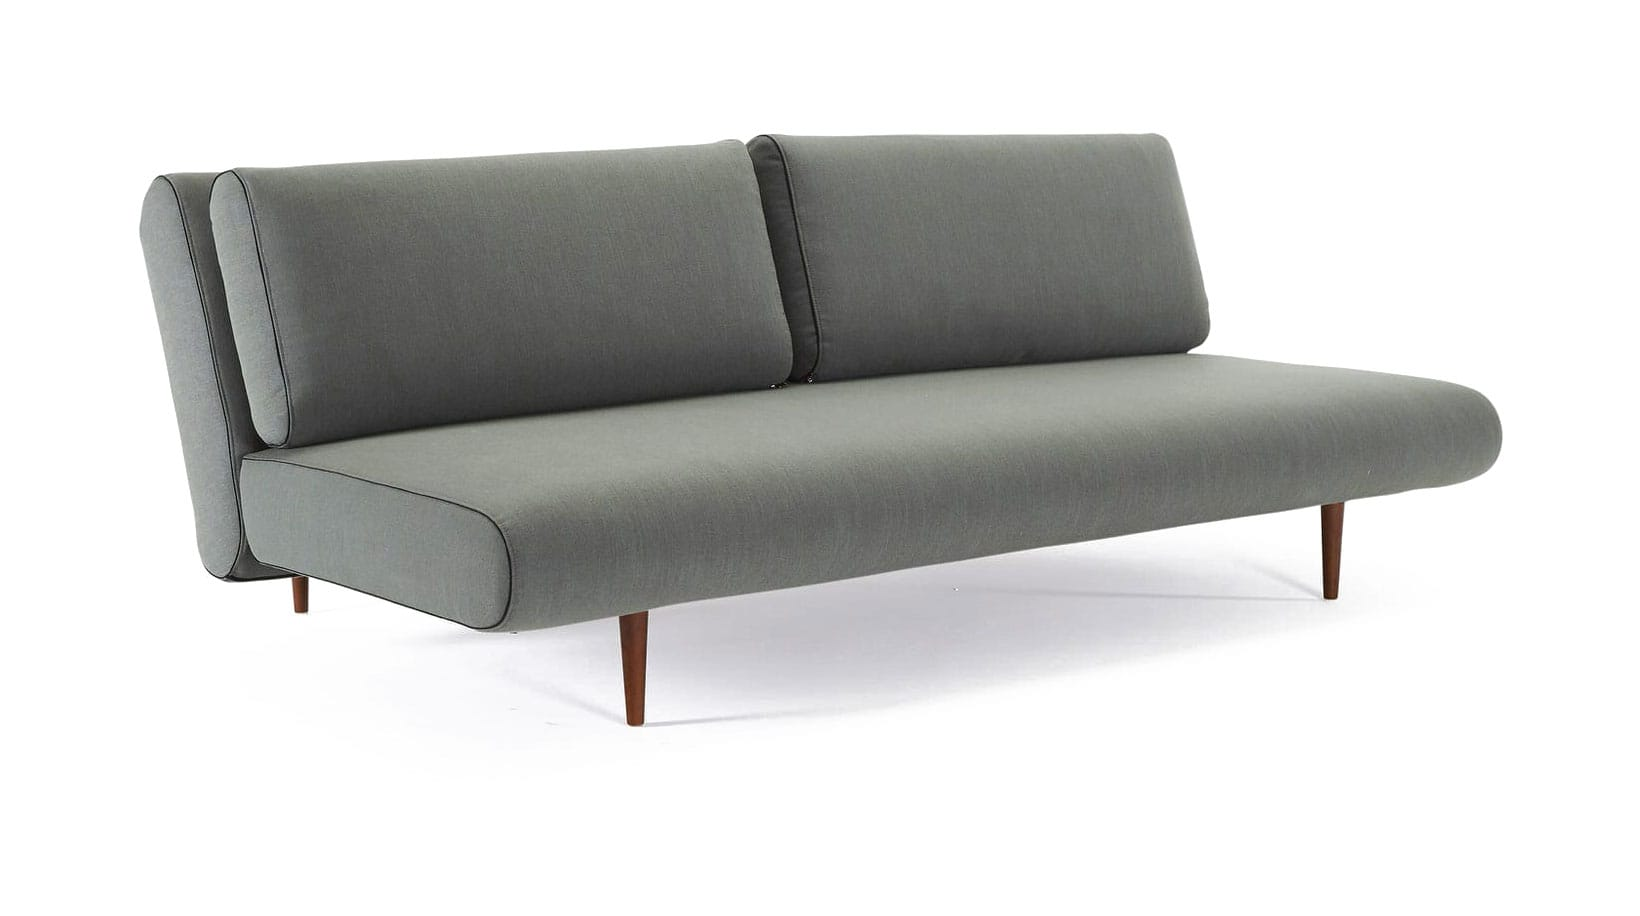 Brilliant Unfurl Lounger Sofa Bed Full Size Elegance Green By Innovation Download Free Architecture Designs Grimeyleaguecom